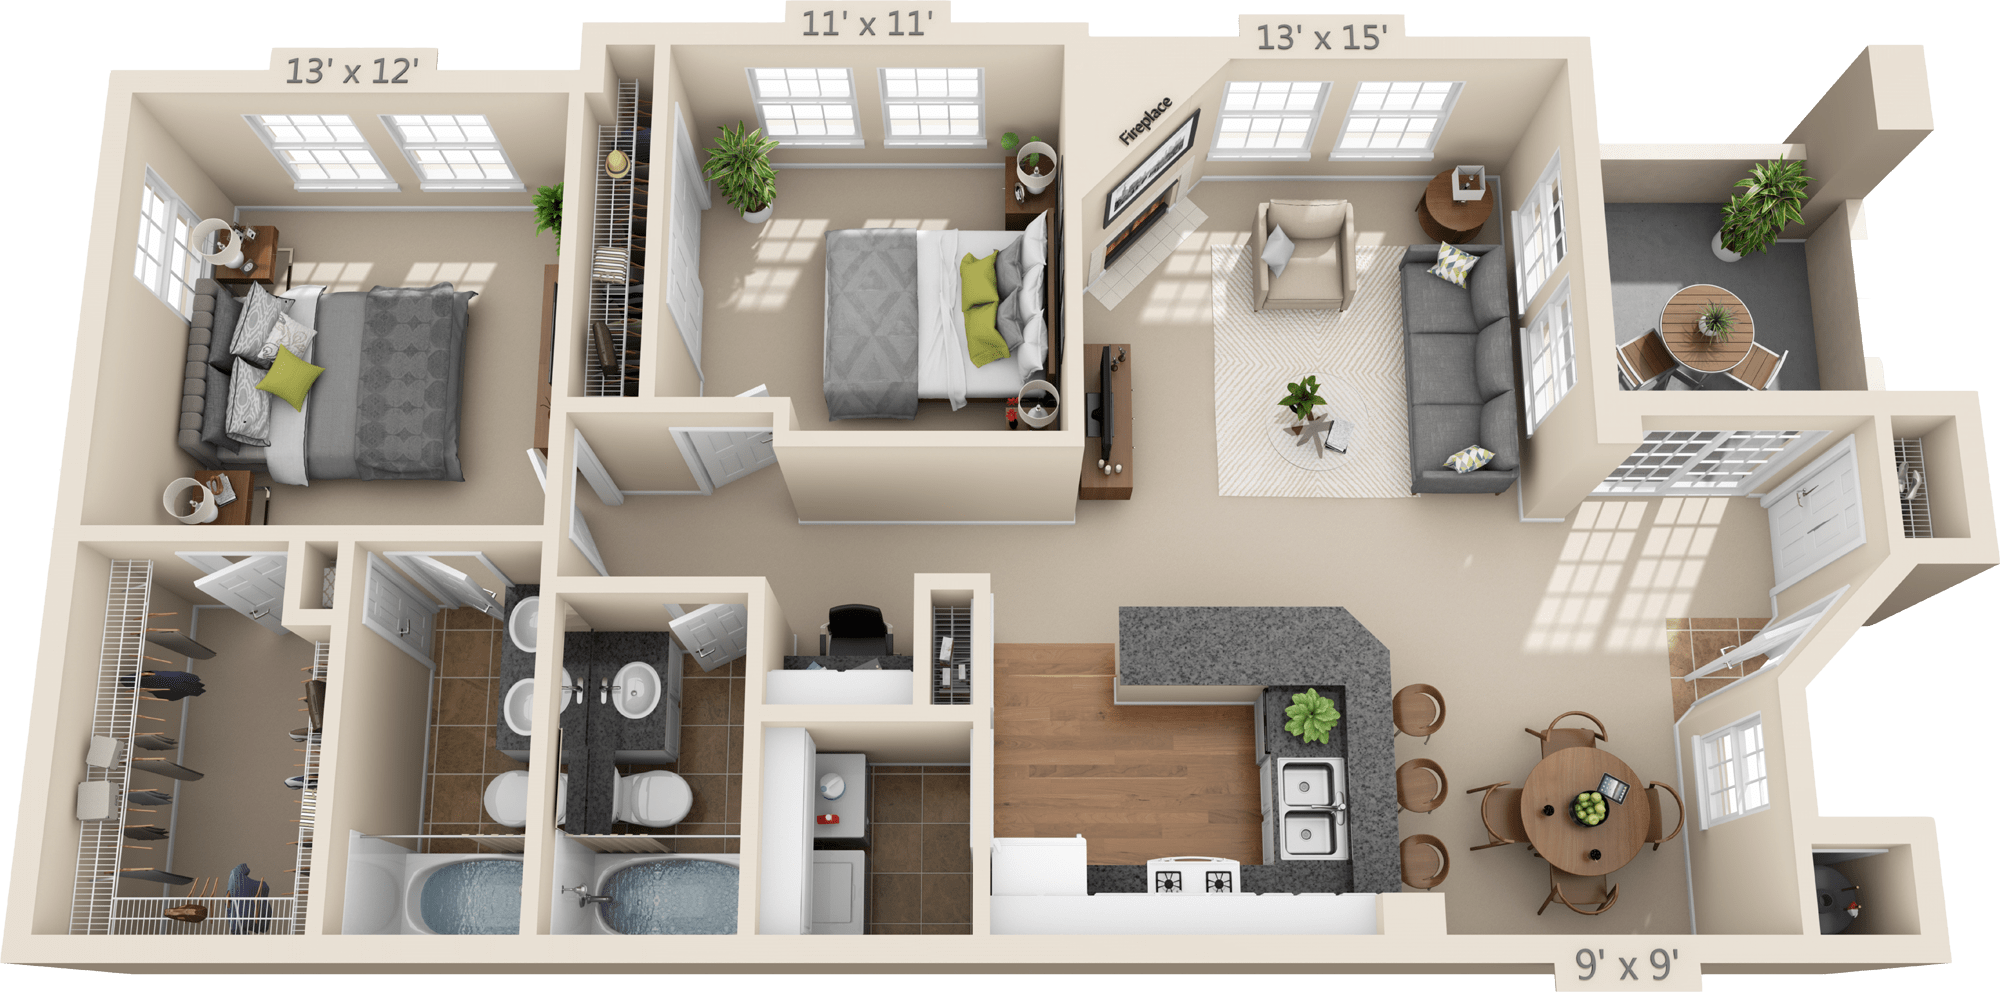 1 2 bedroom apartments for rent in colorado springs co for One bedroom apartments colorado springs